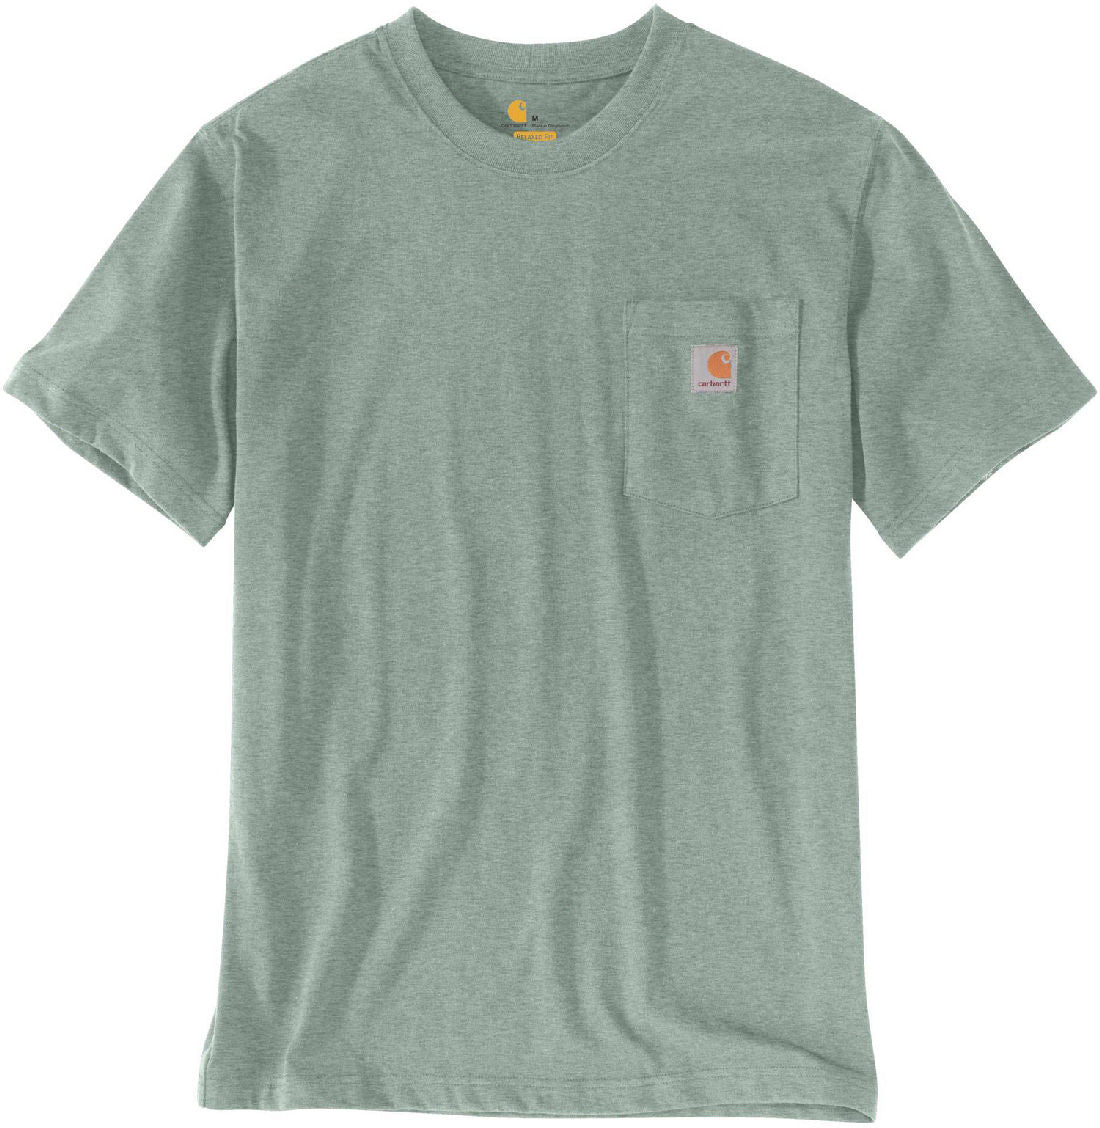 'Carhartt' Men's Workwear Pocket Tee - Leaf Green Snow Heather